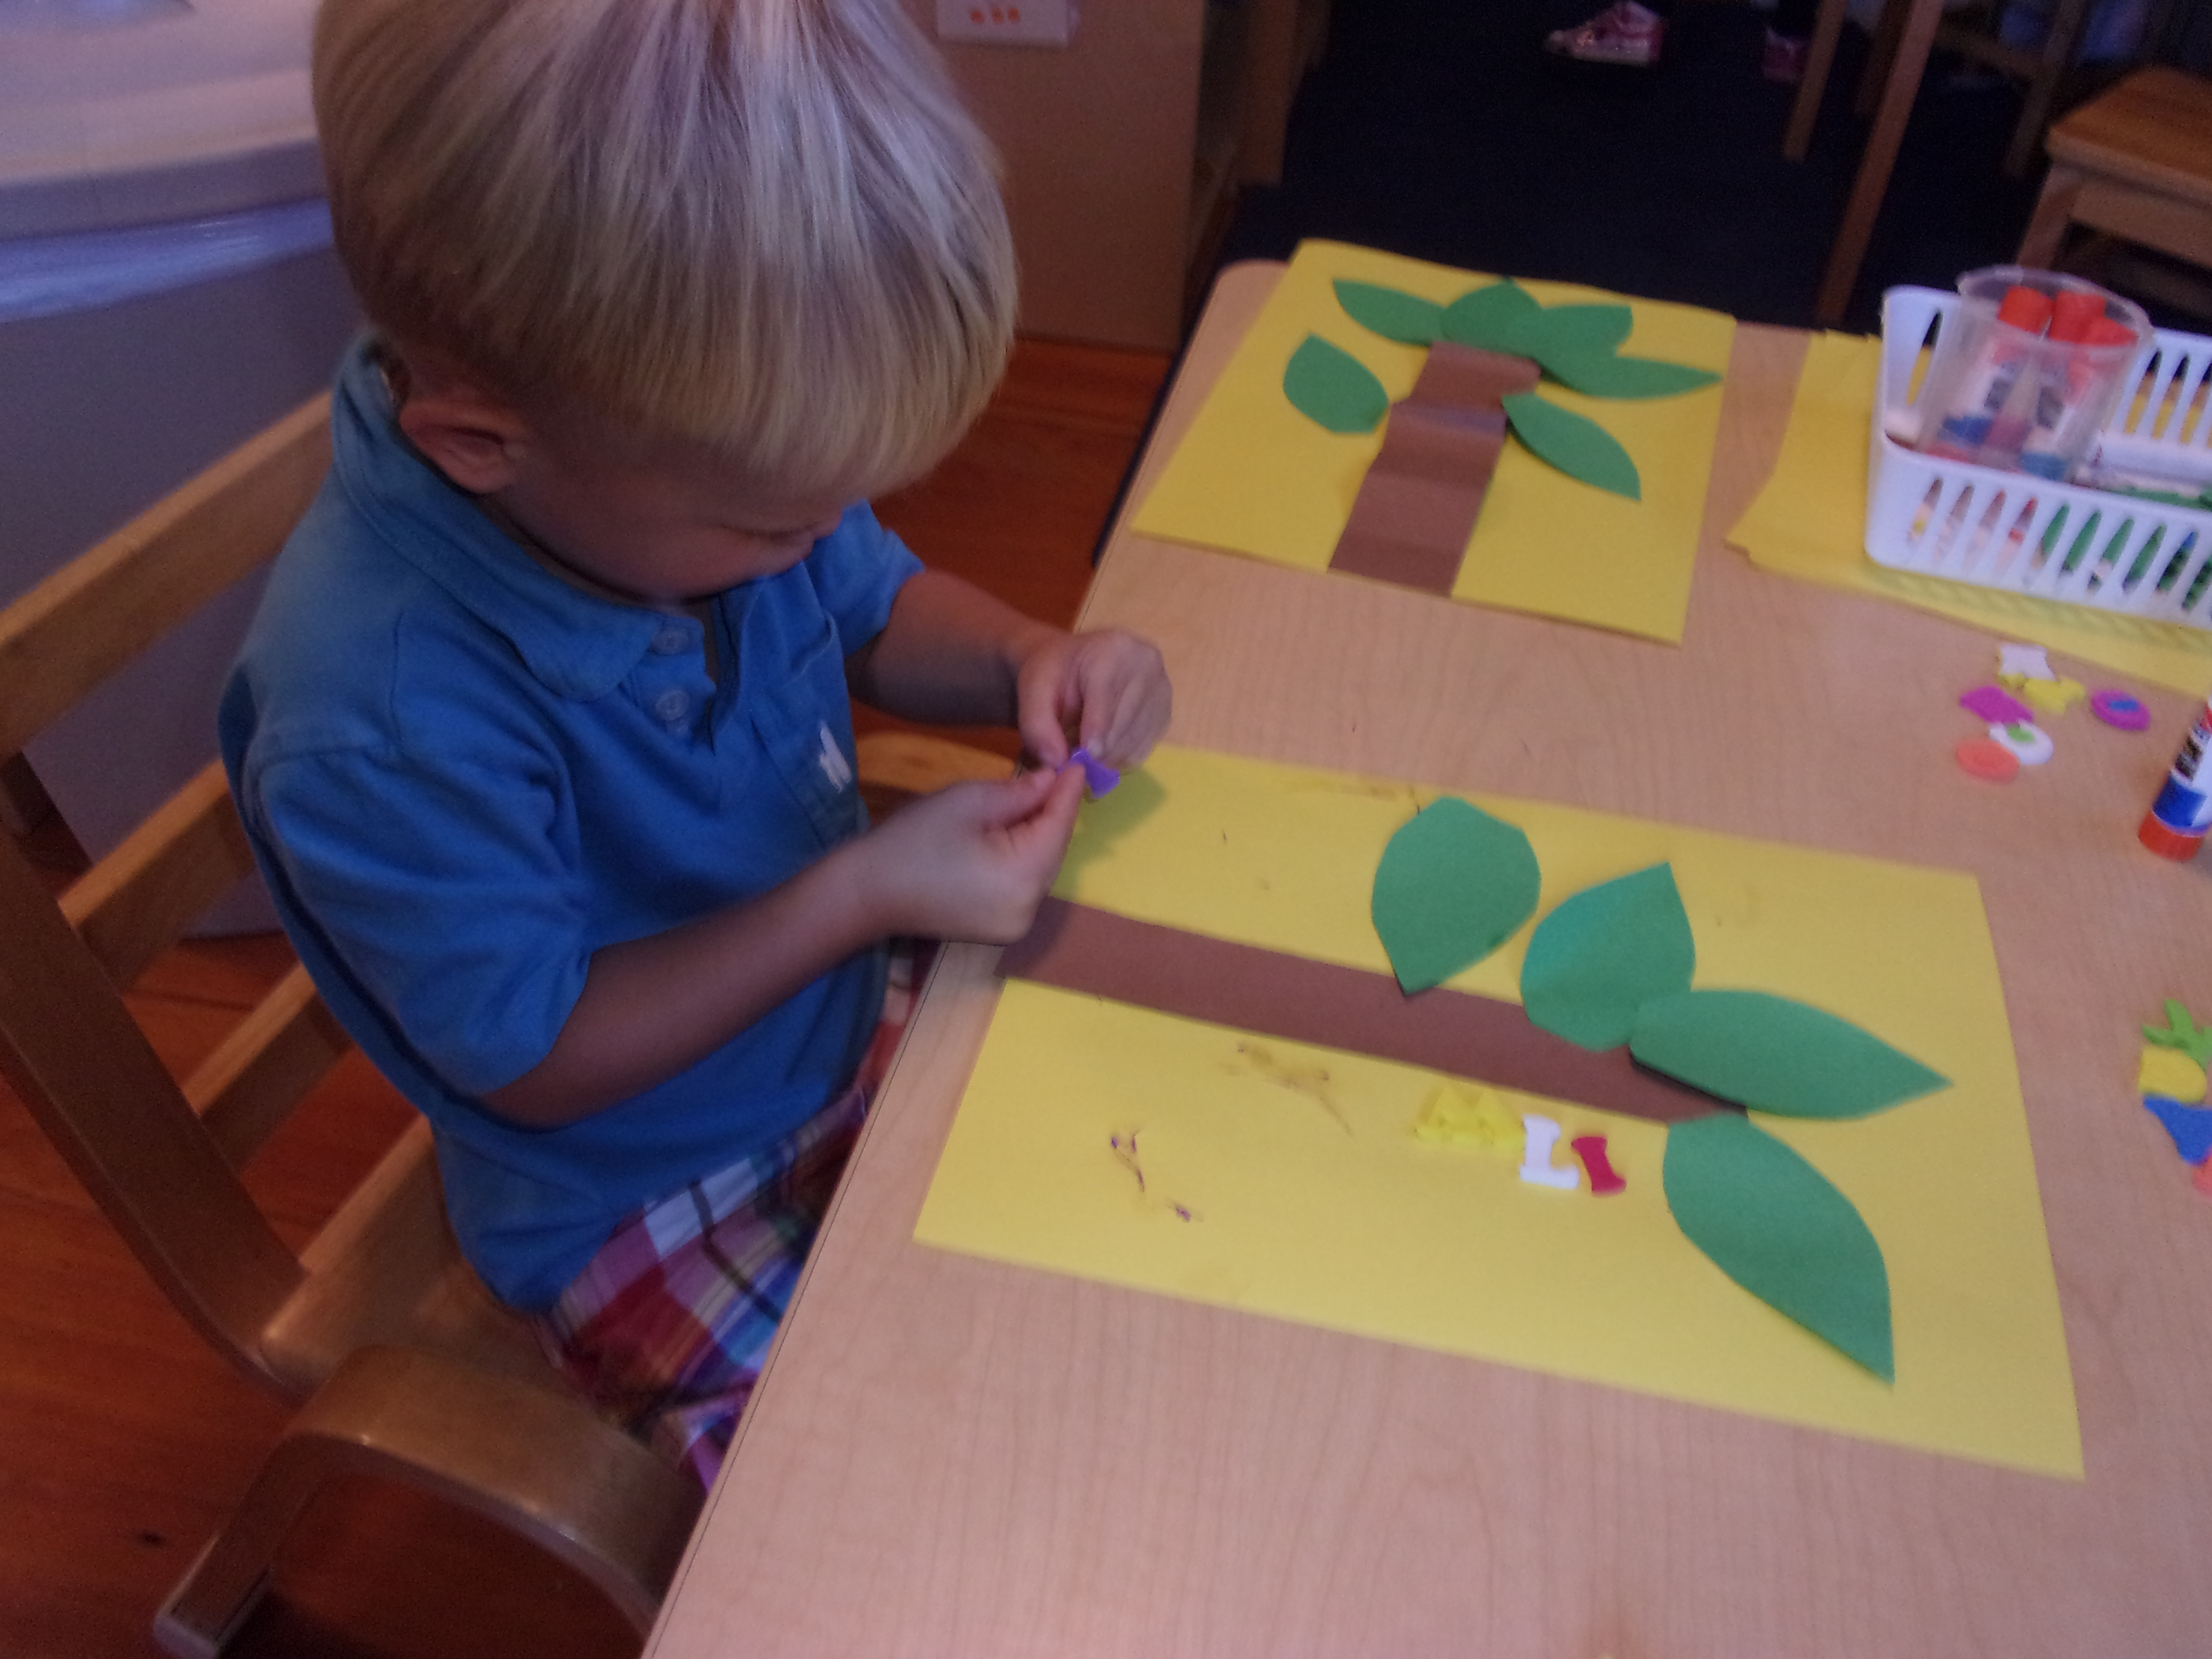 Children learning at Carriage House Nursery School